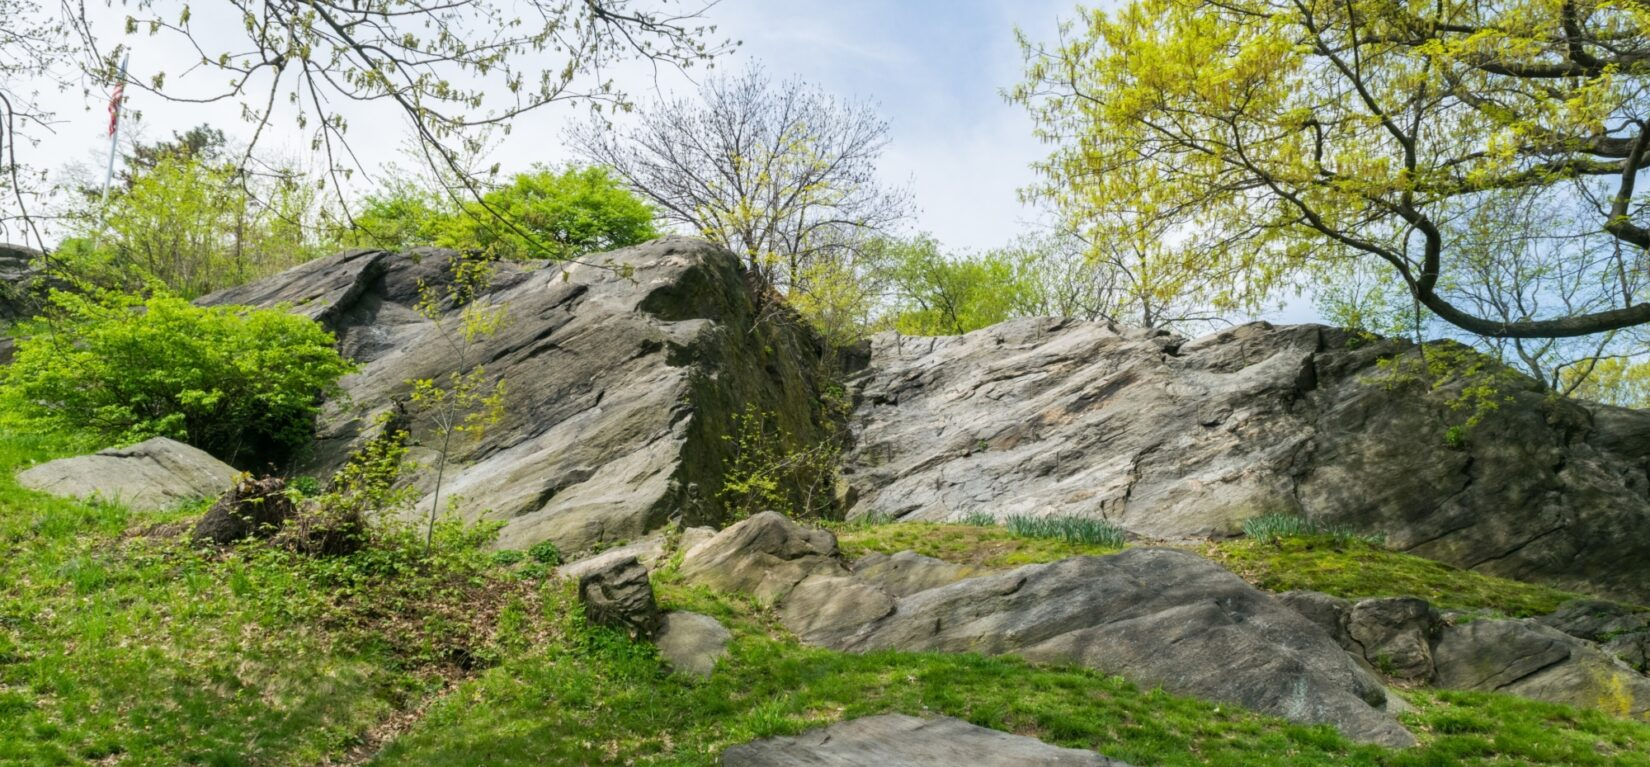 A rocky outcropping typical of the Fort Landscape tour